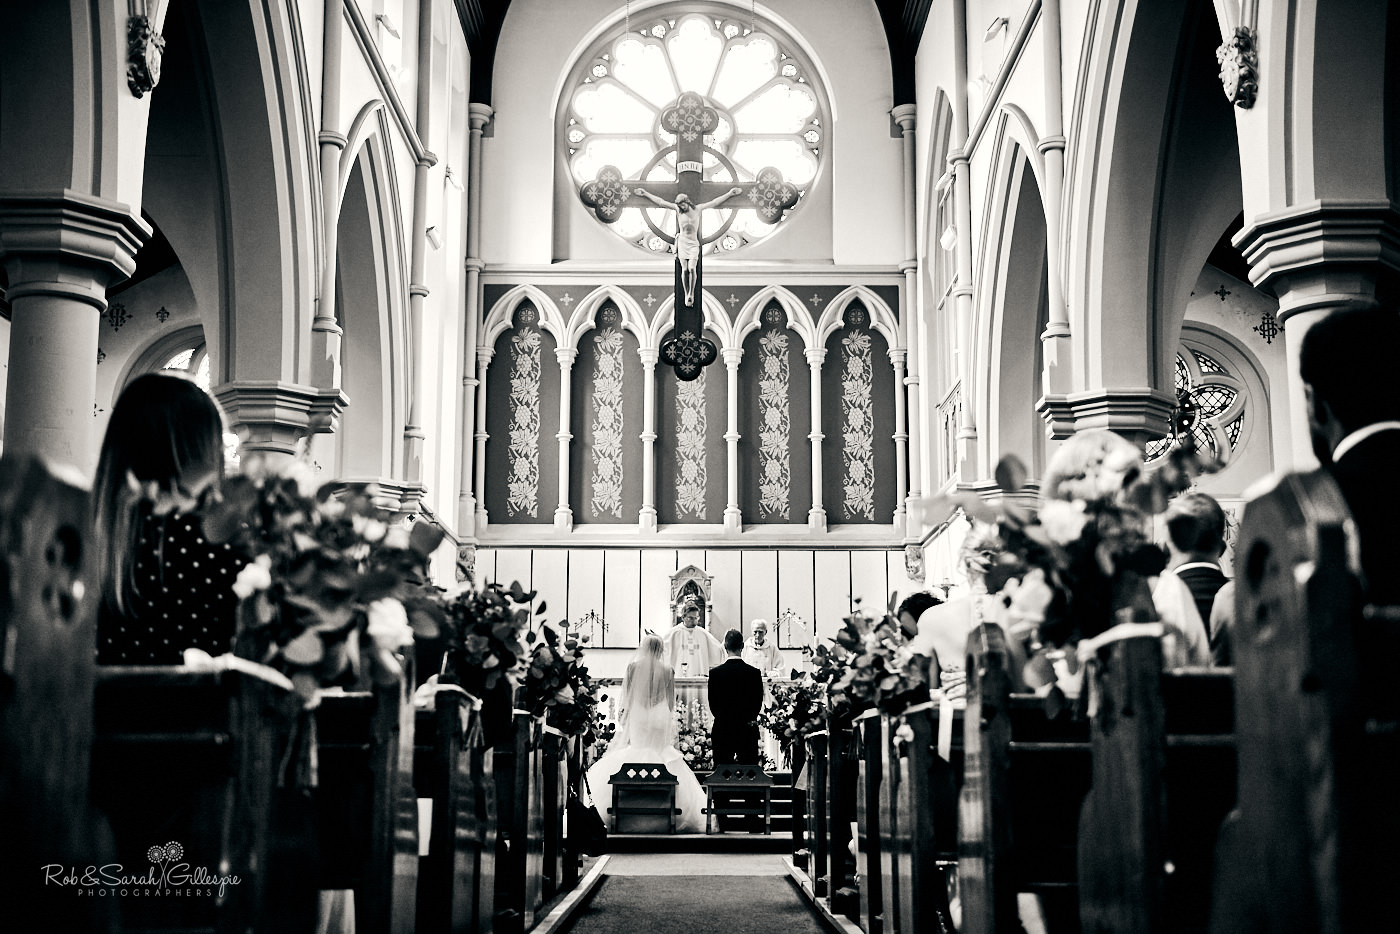 Wedding ceremony at St Anne's Roman Catholic church in Birmingham